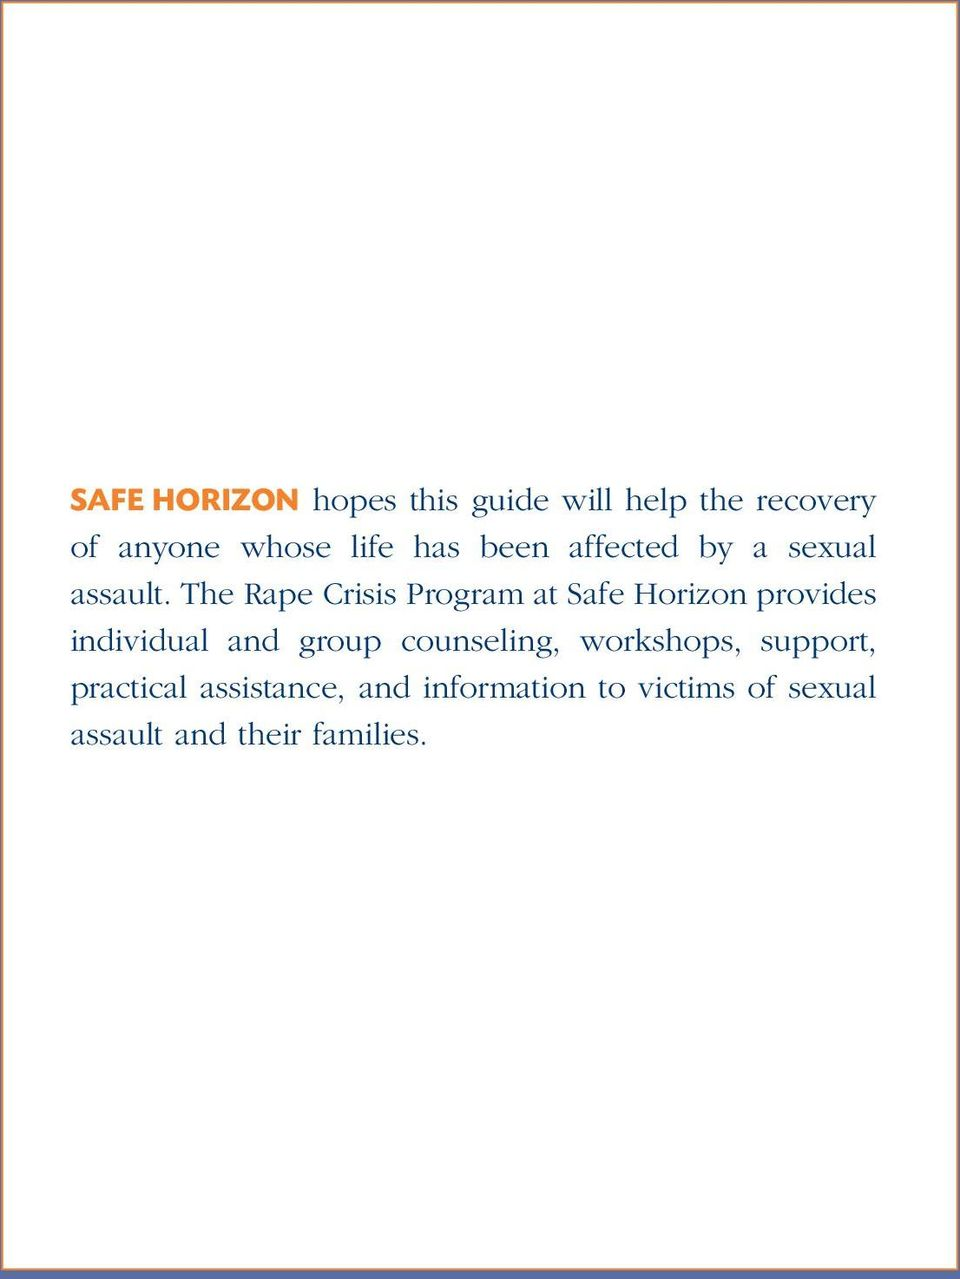 The Rape Crisis Program at Safe Horizon provides individual and group